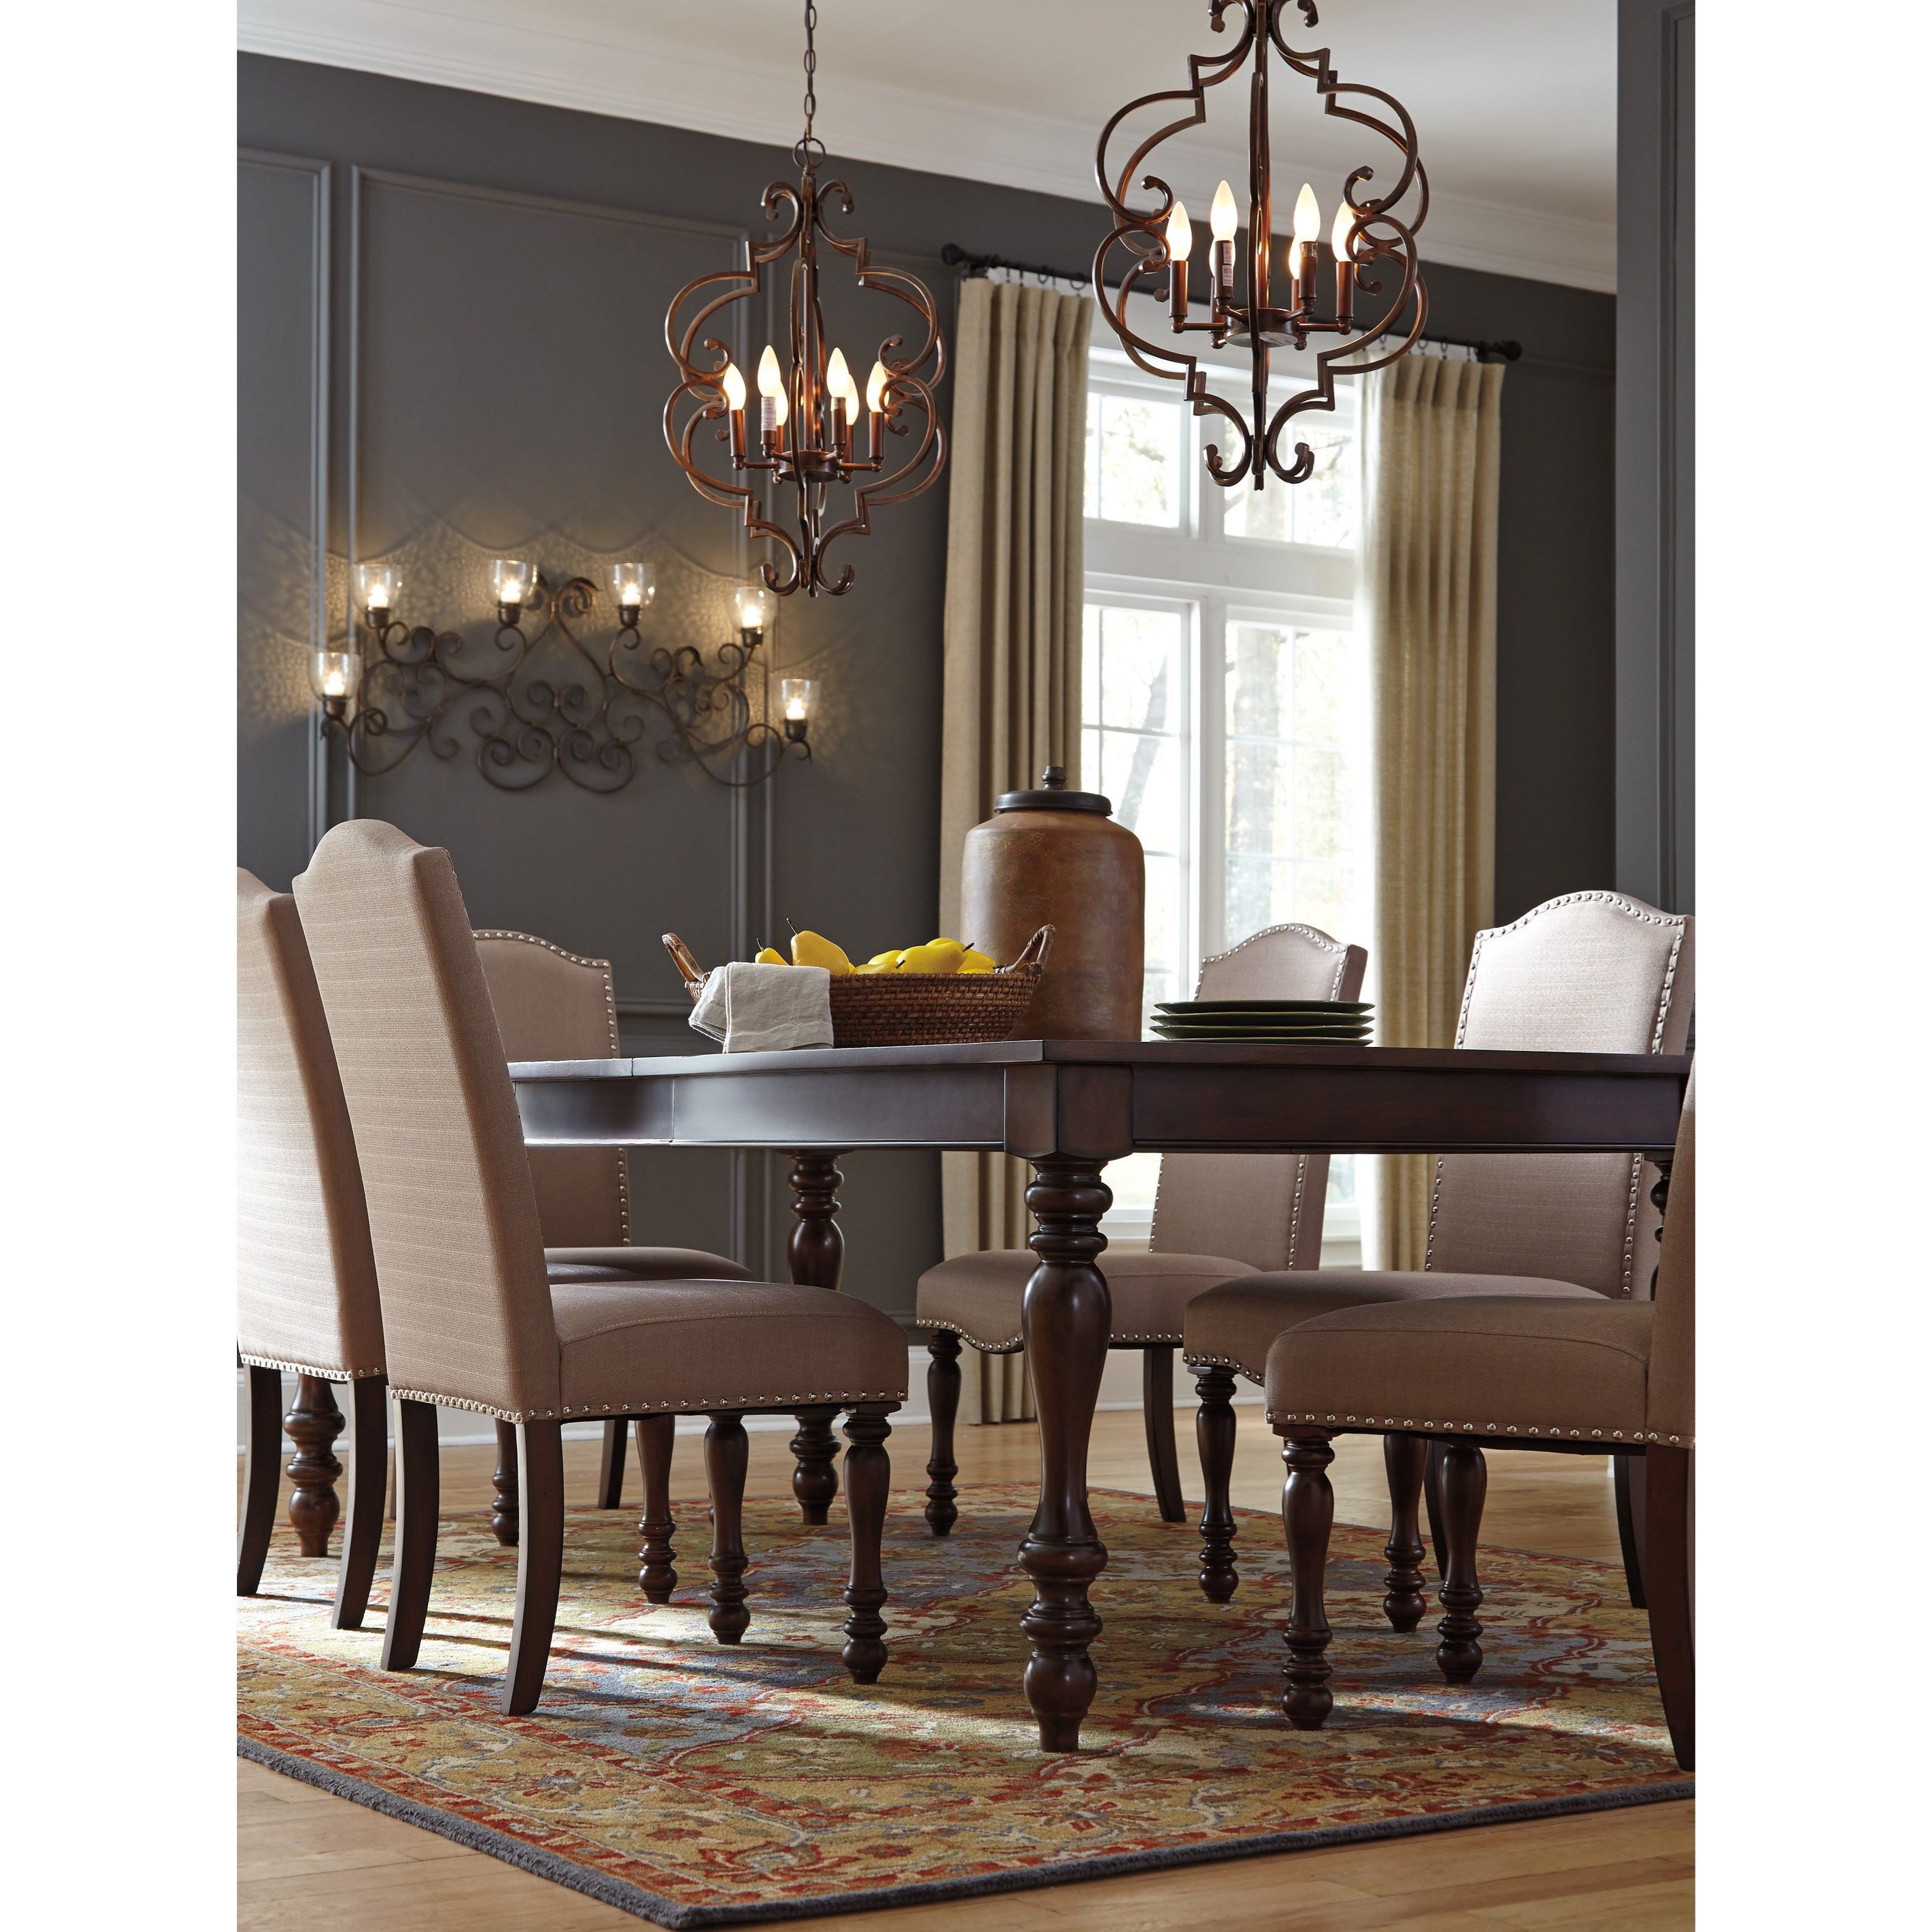 Signature Design By Ashley Baxenburg 7 Piece Dining Room